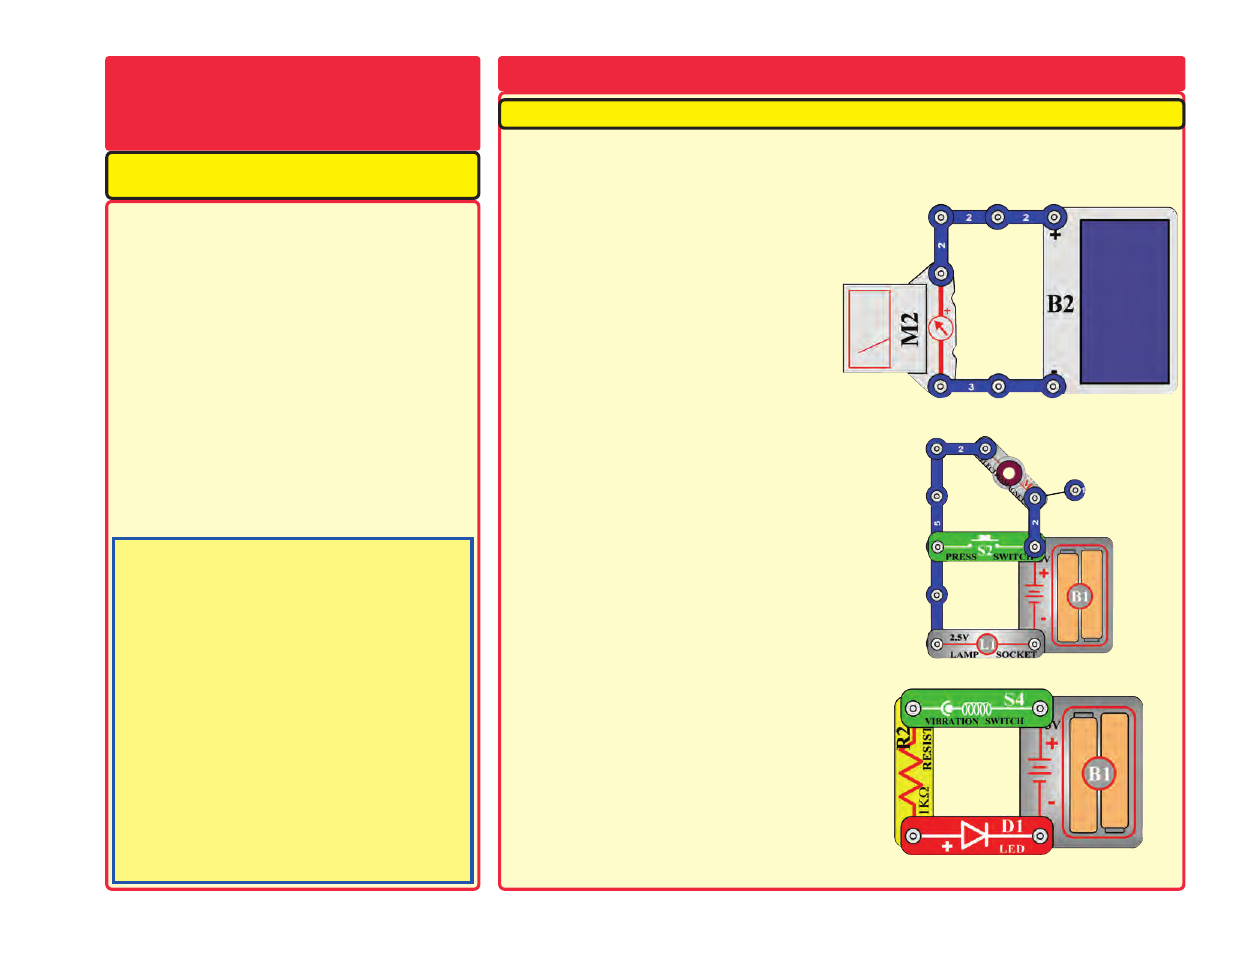 More Advanced Troubleshooting About Your Snap Circuits Elenco Circuitsr By Elencor Replacement Parts Projects 512